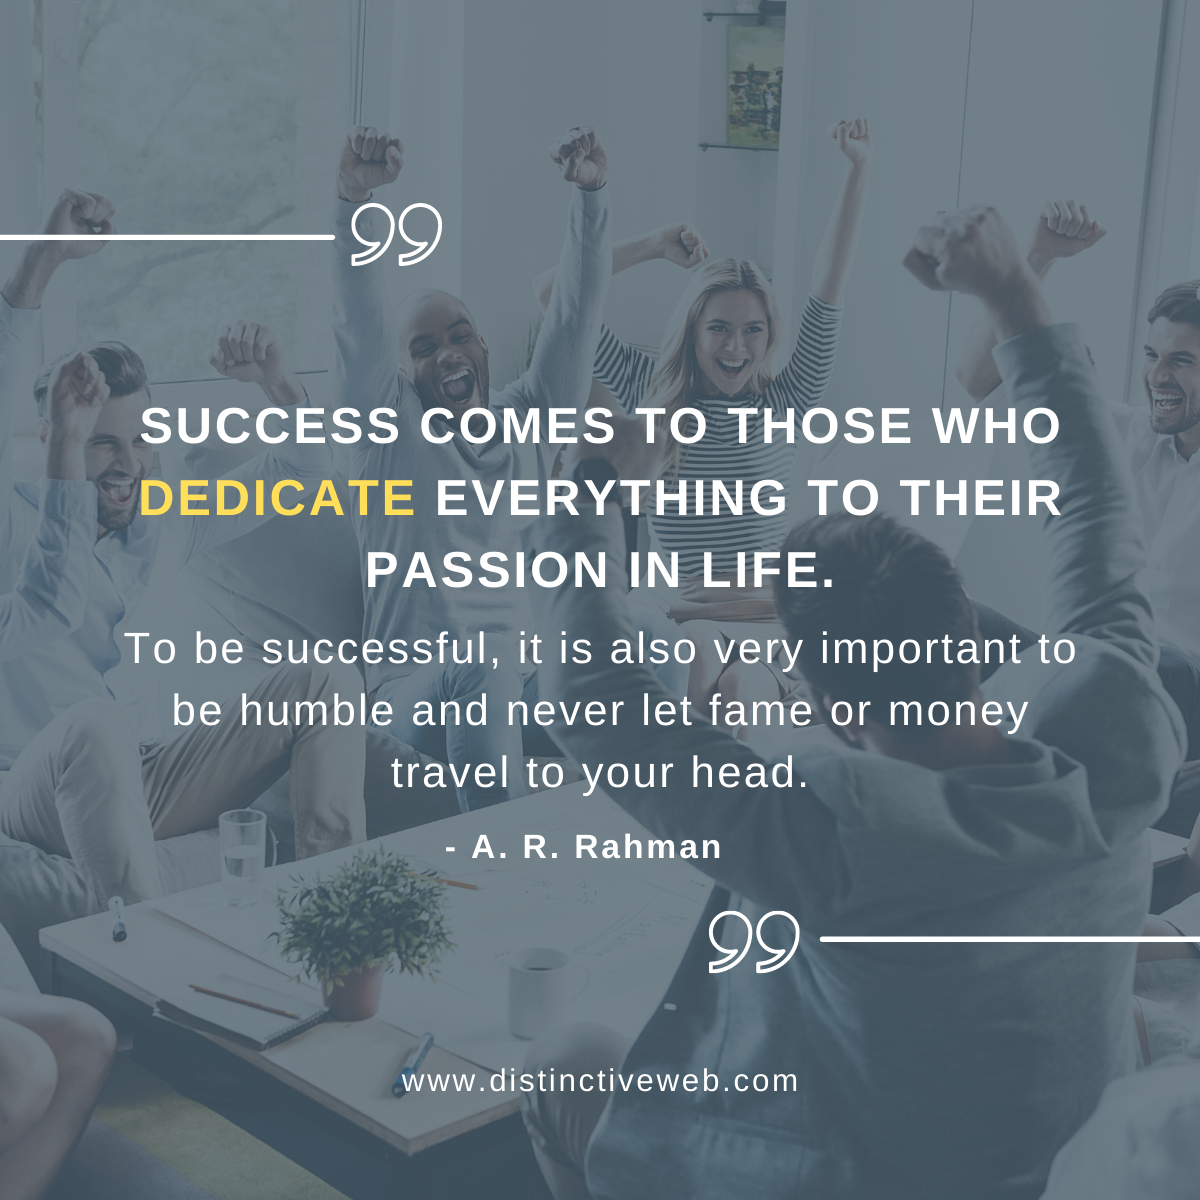 """""""Success comes to those who dedicate everything to their passion in life. To be successful, it is also very important to be humble and never let fame or money travel to your head."""" -- A. R. Rahman"""